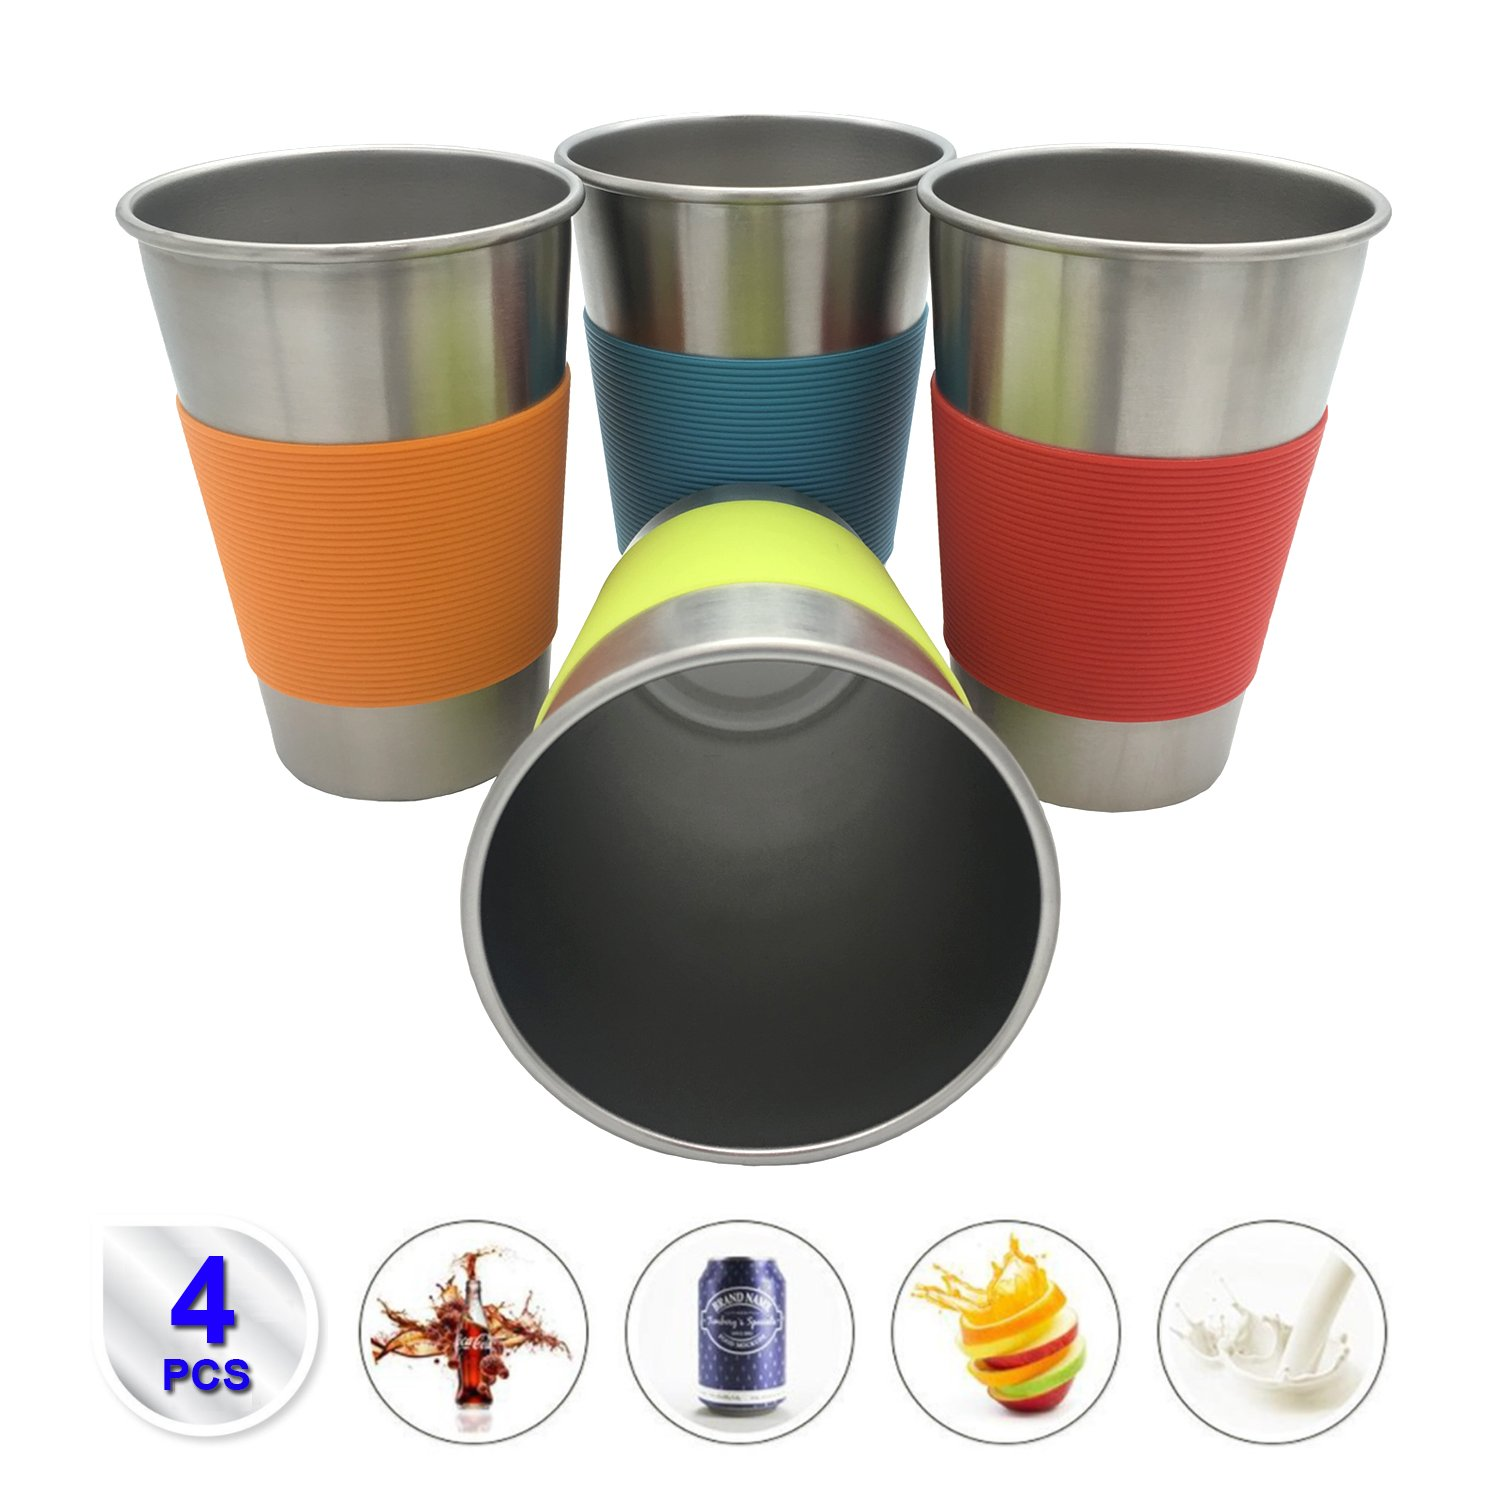 Stainless Steel 17 oz Pint Cup with Sleeves (4 Pack)-Unbreakable, Stackable,Premium Metal Drinking Glasses for Travel, Outdoor, & Everyday